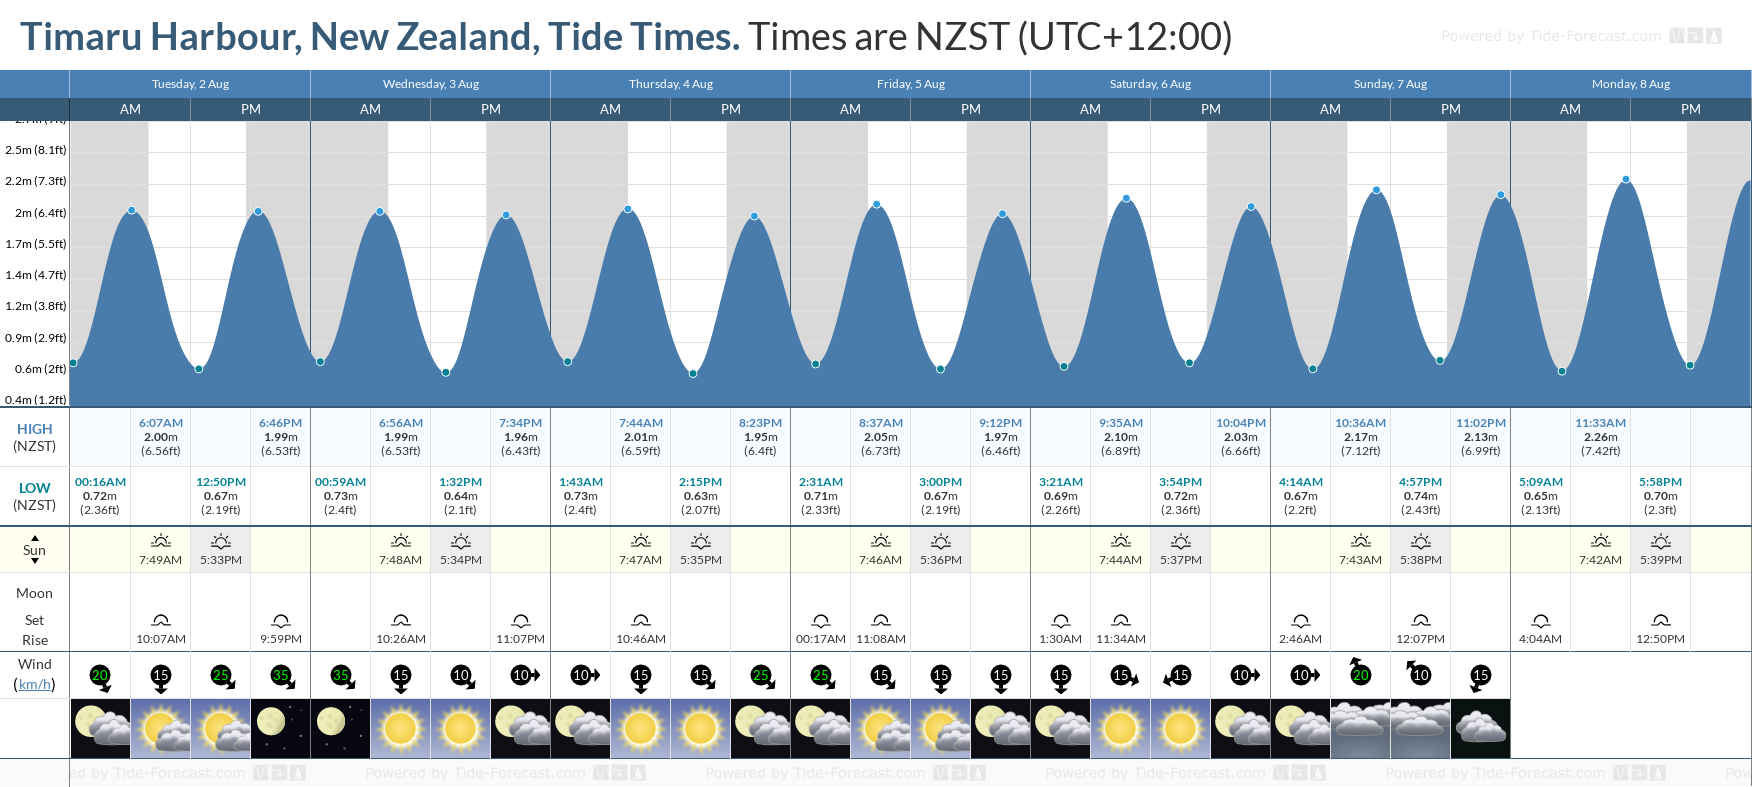 Timaru Harbour, New Zealand Tide Chart including high and low tide tide times for the next 7 days